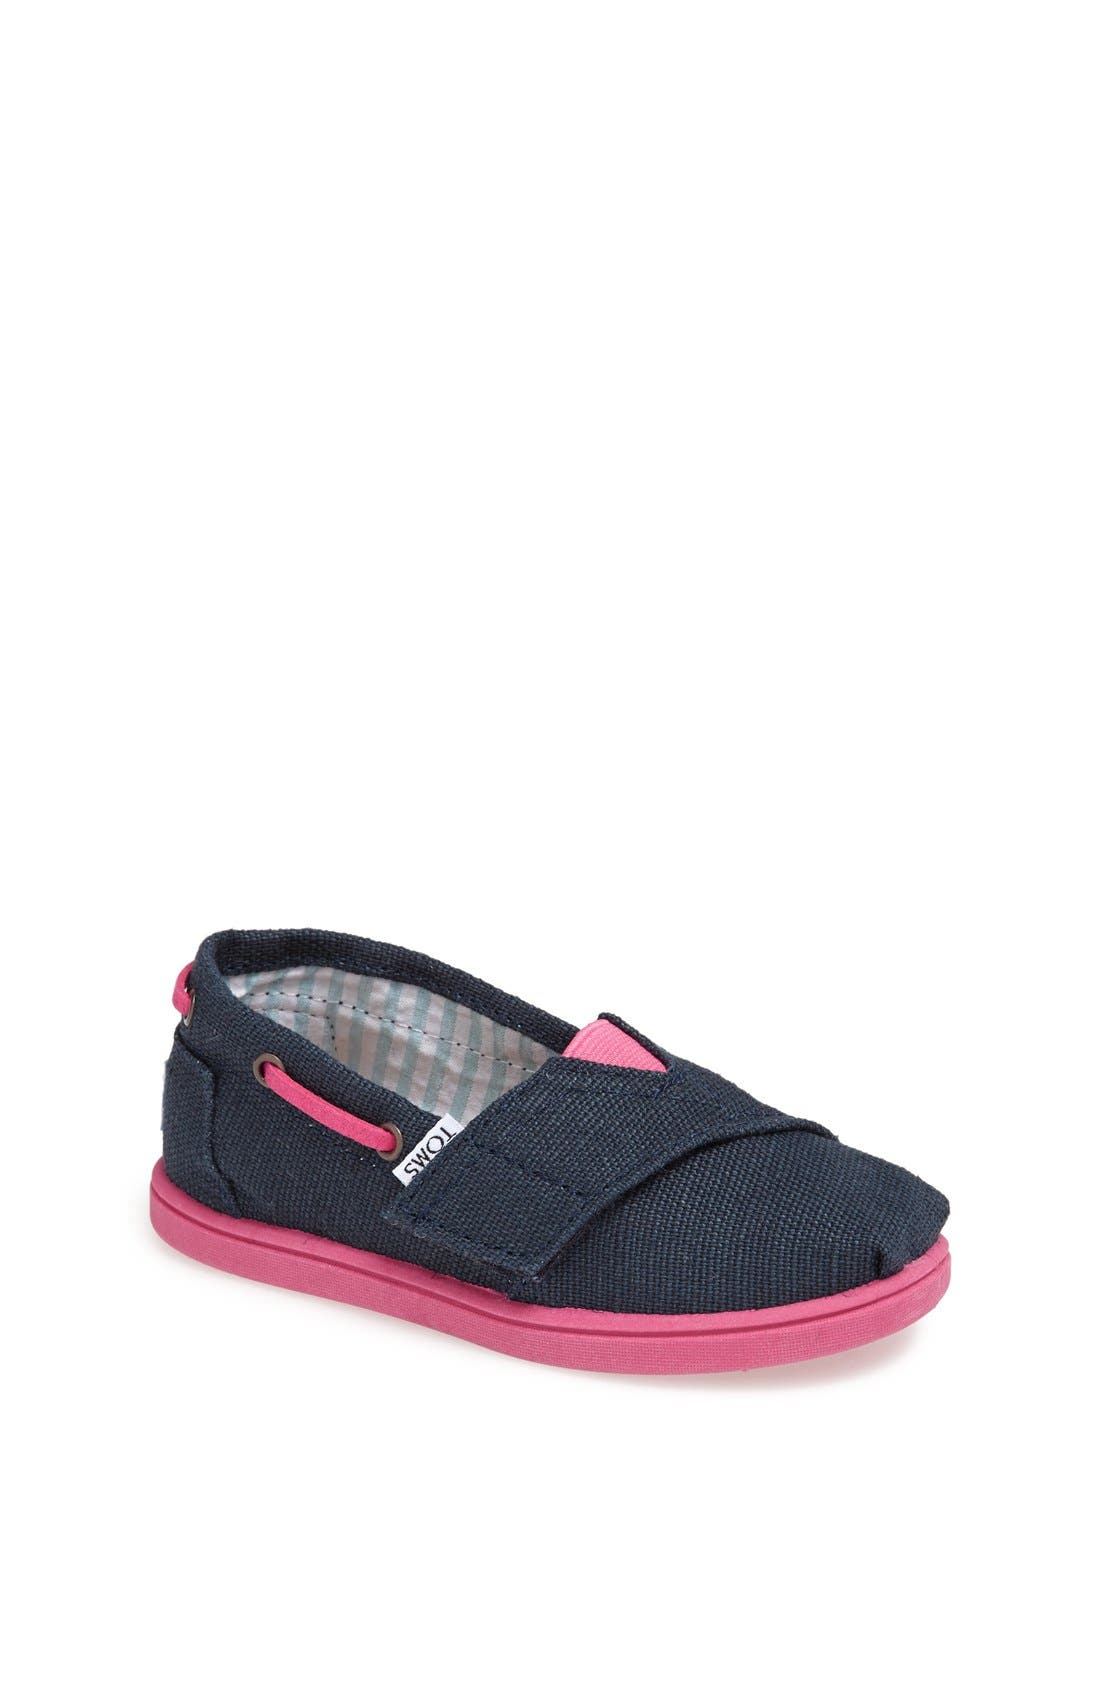 Alternate Image 1 Selected - TOMS 'Classic Tiny - Burlap Bimini' Slip-On (Baby, Walker & Toddler)(Nordstrom Exclusive Color)